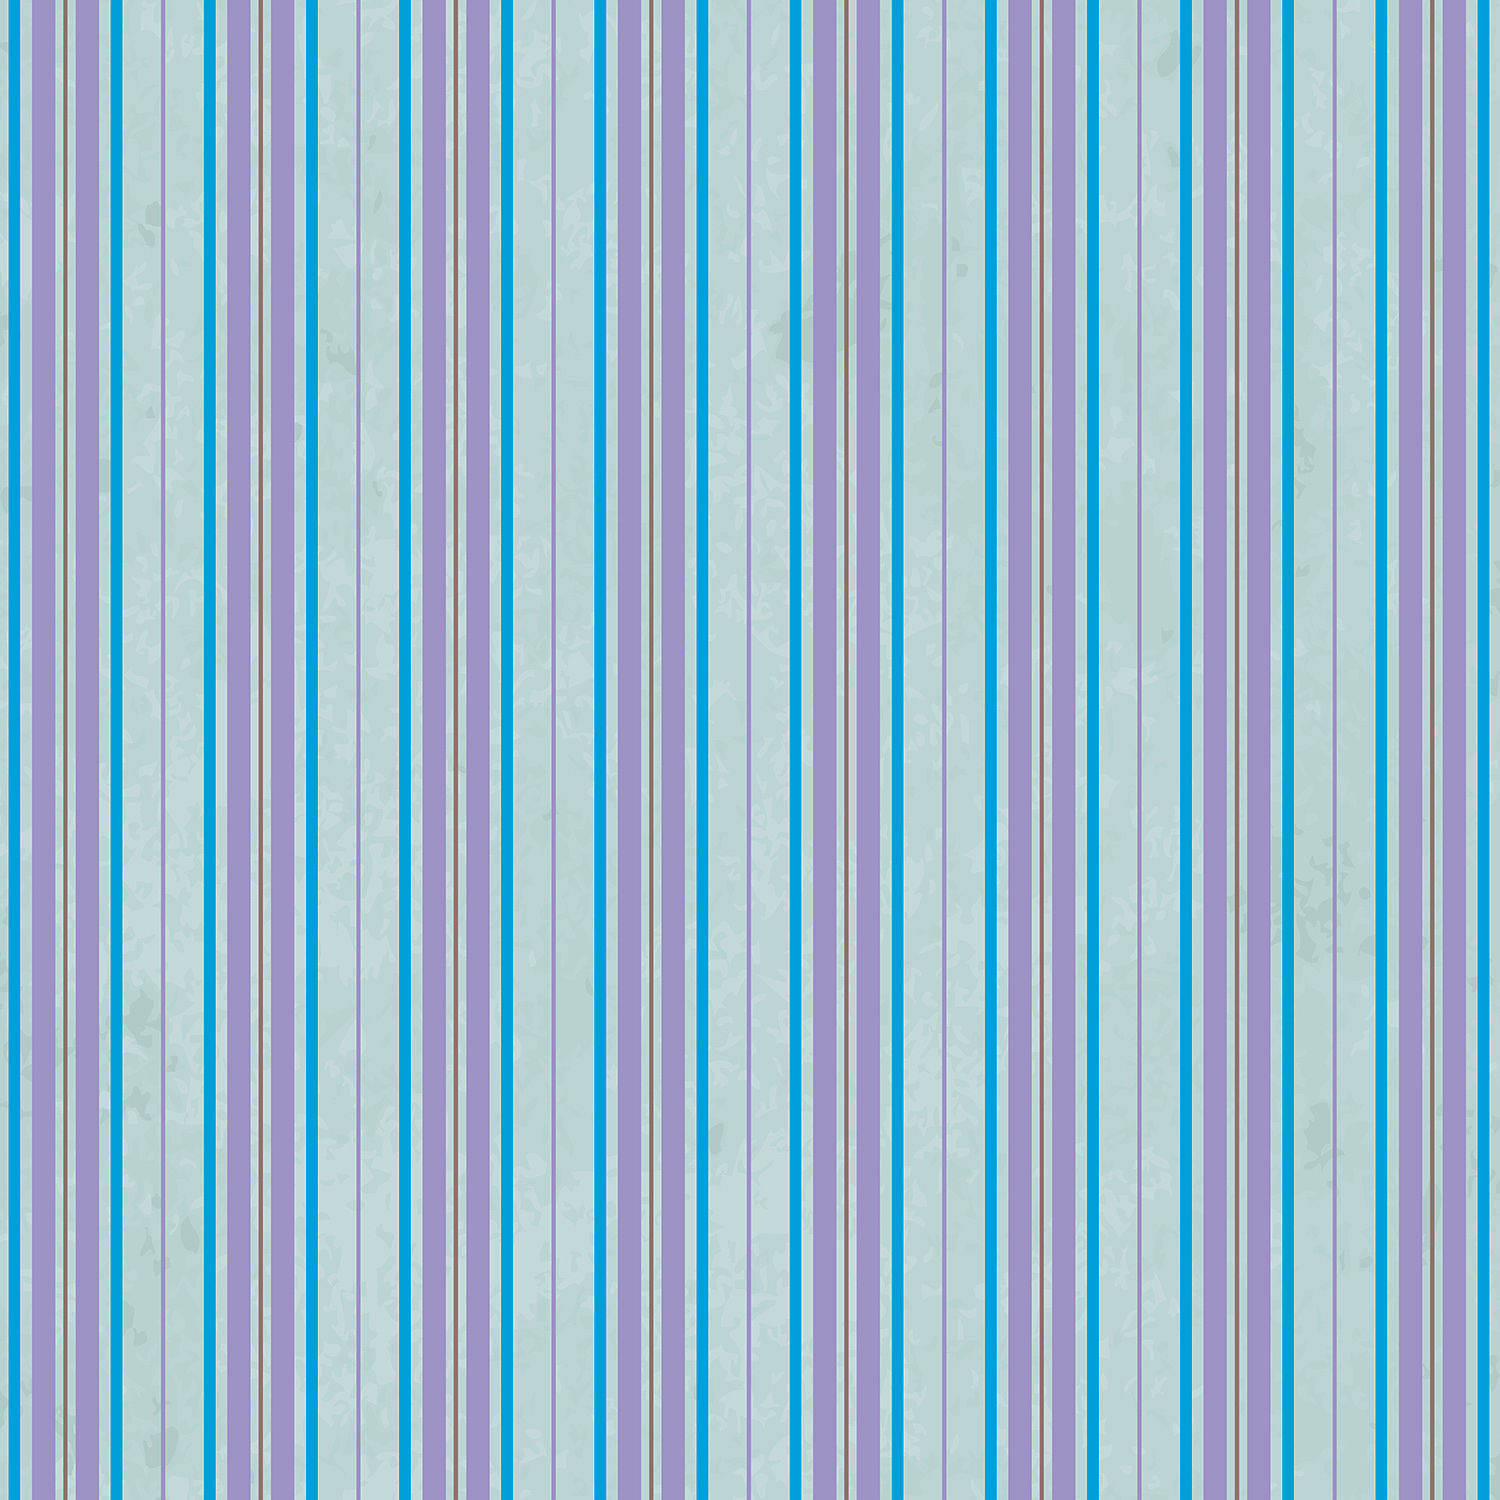 Westcott Striped Wallpaper Matte Vinyl Backdrop With Hook And Loop Attachment 3 5 X